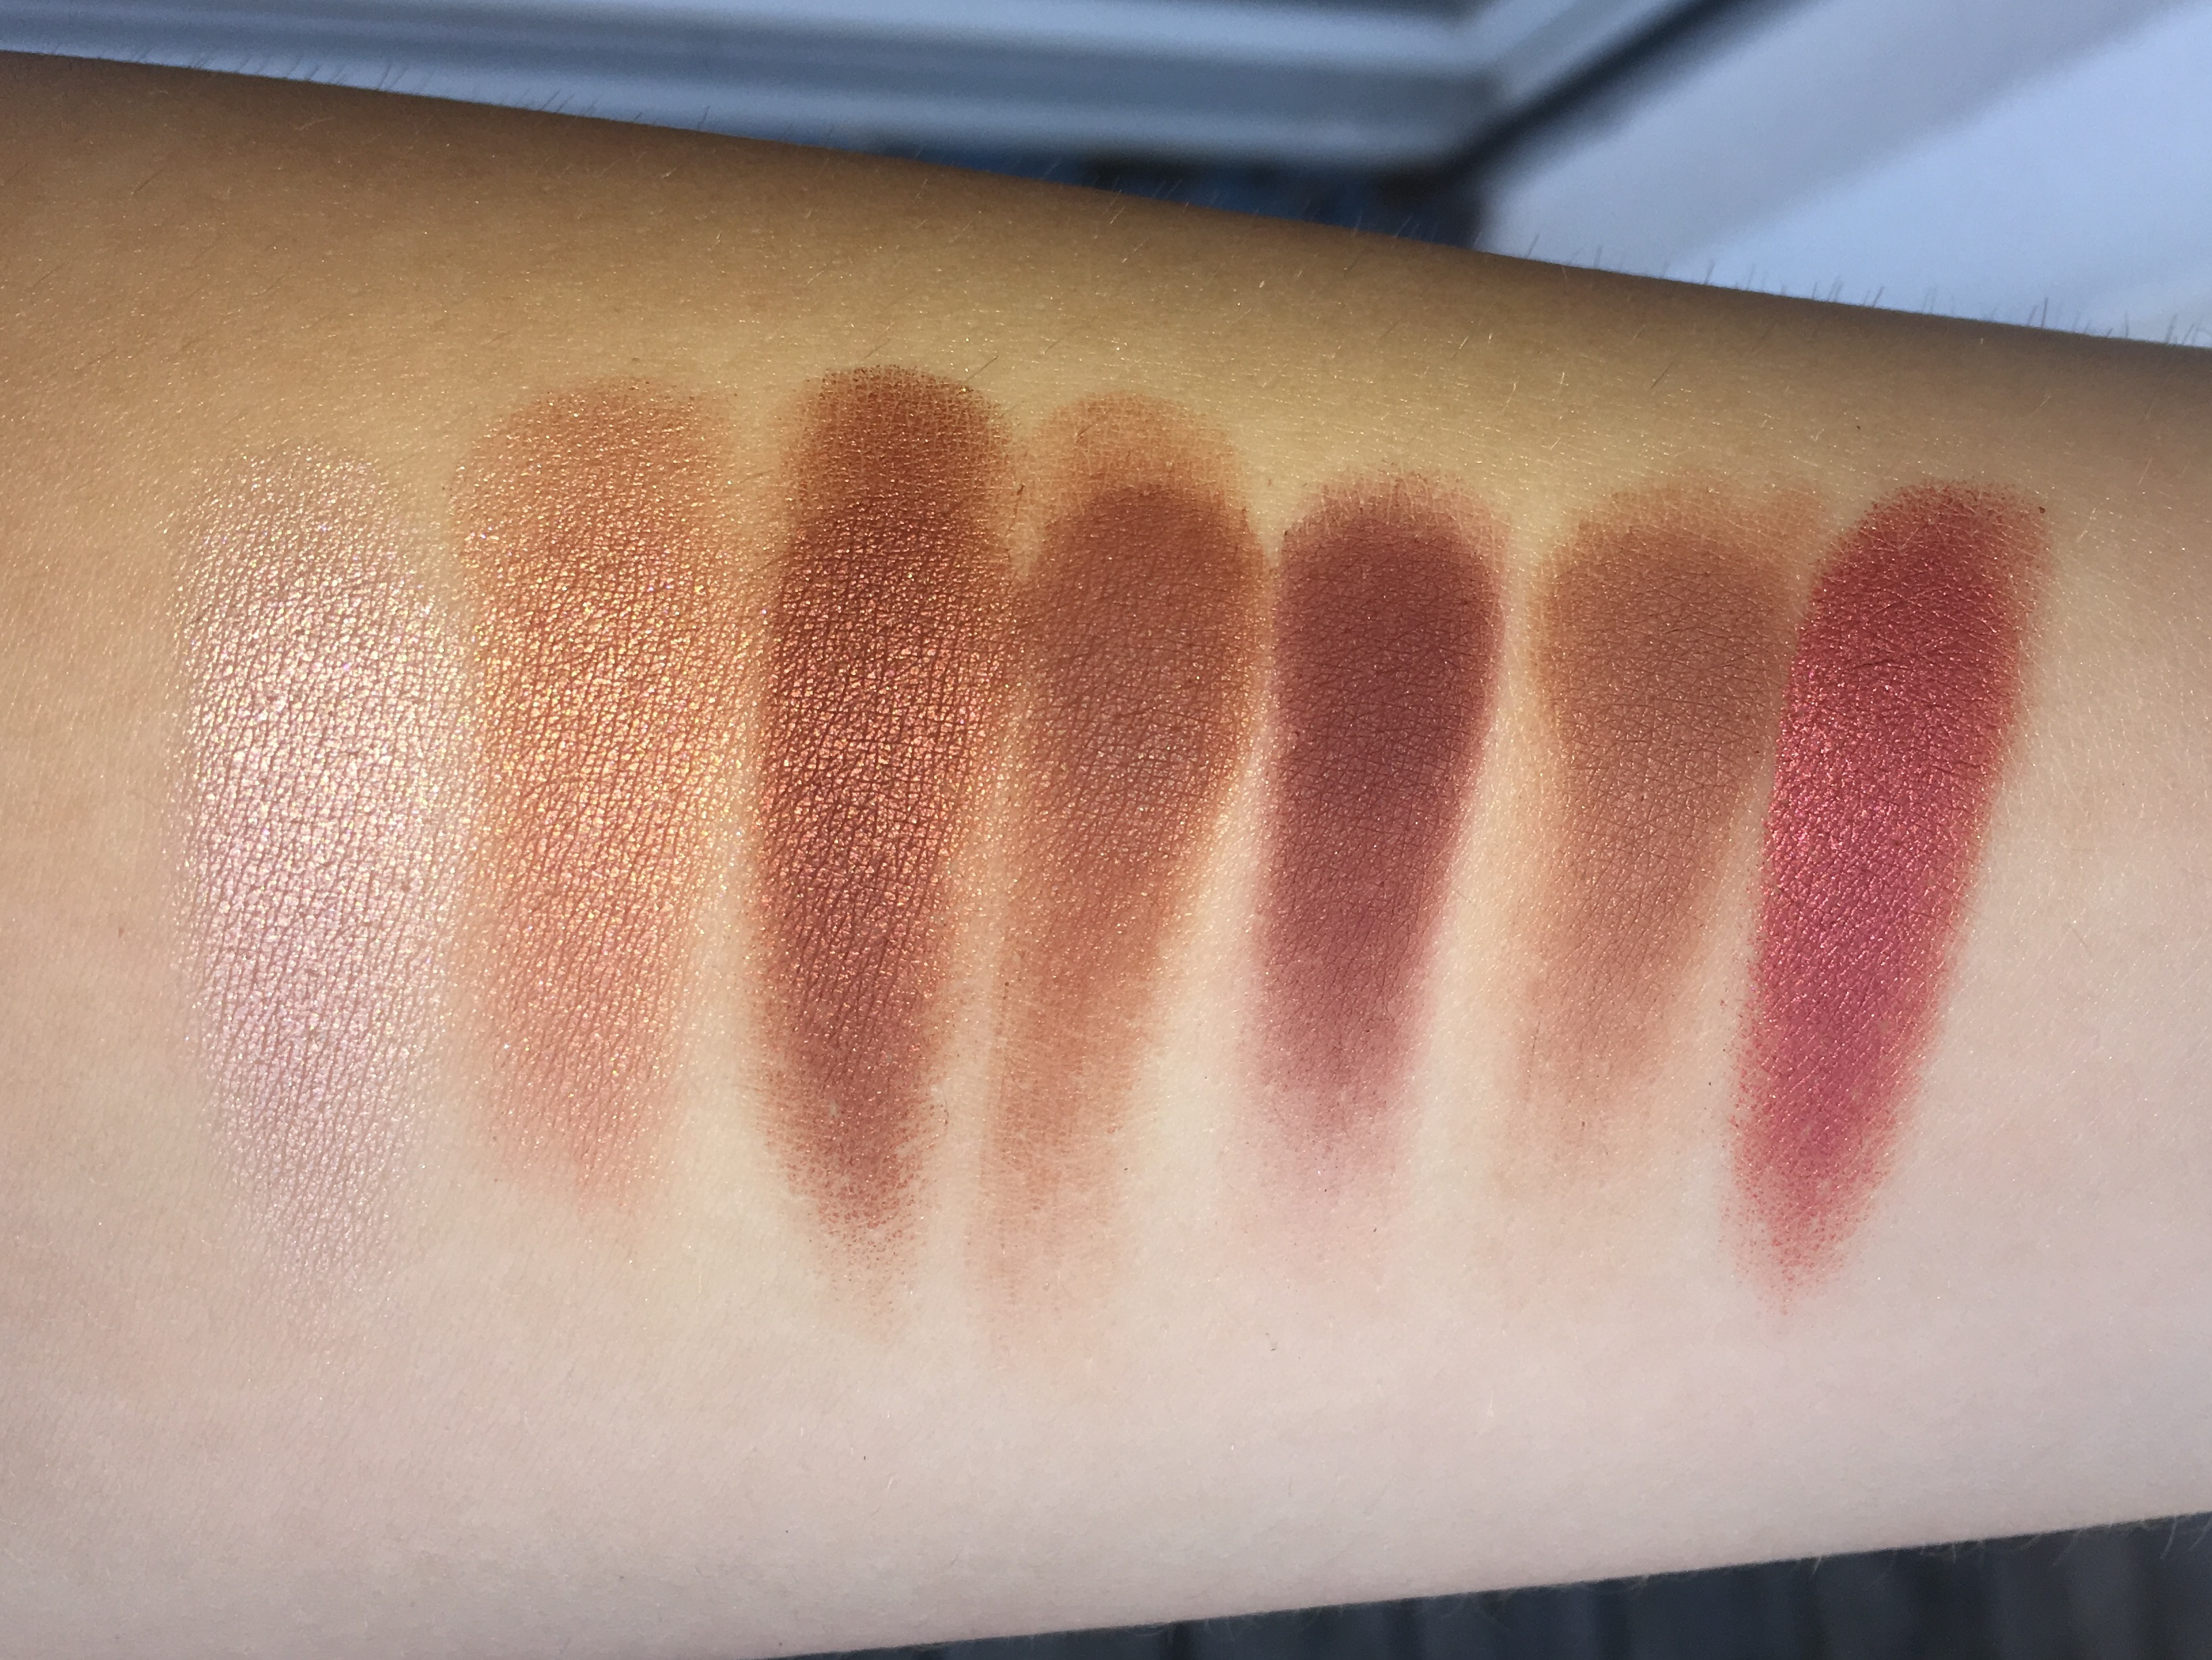 morphe-jaclyn-hill-eyeshadow-palette-swatches-3